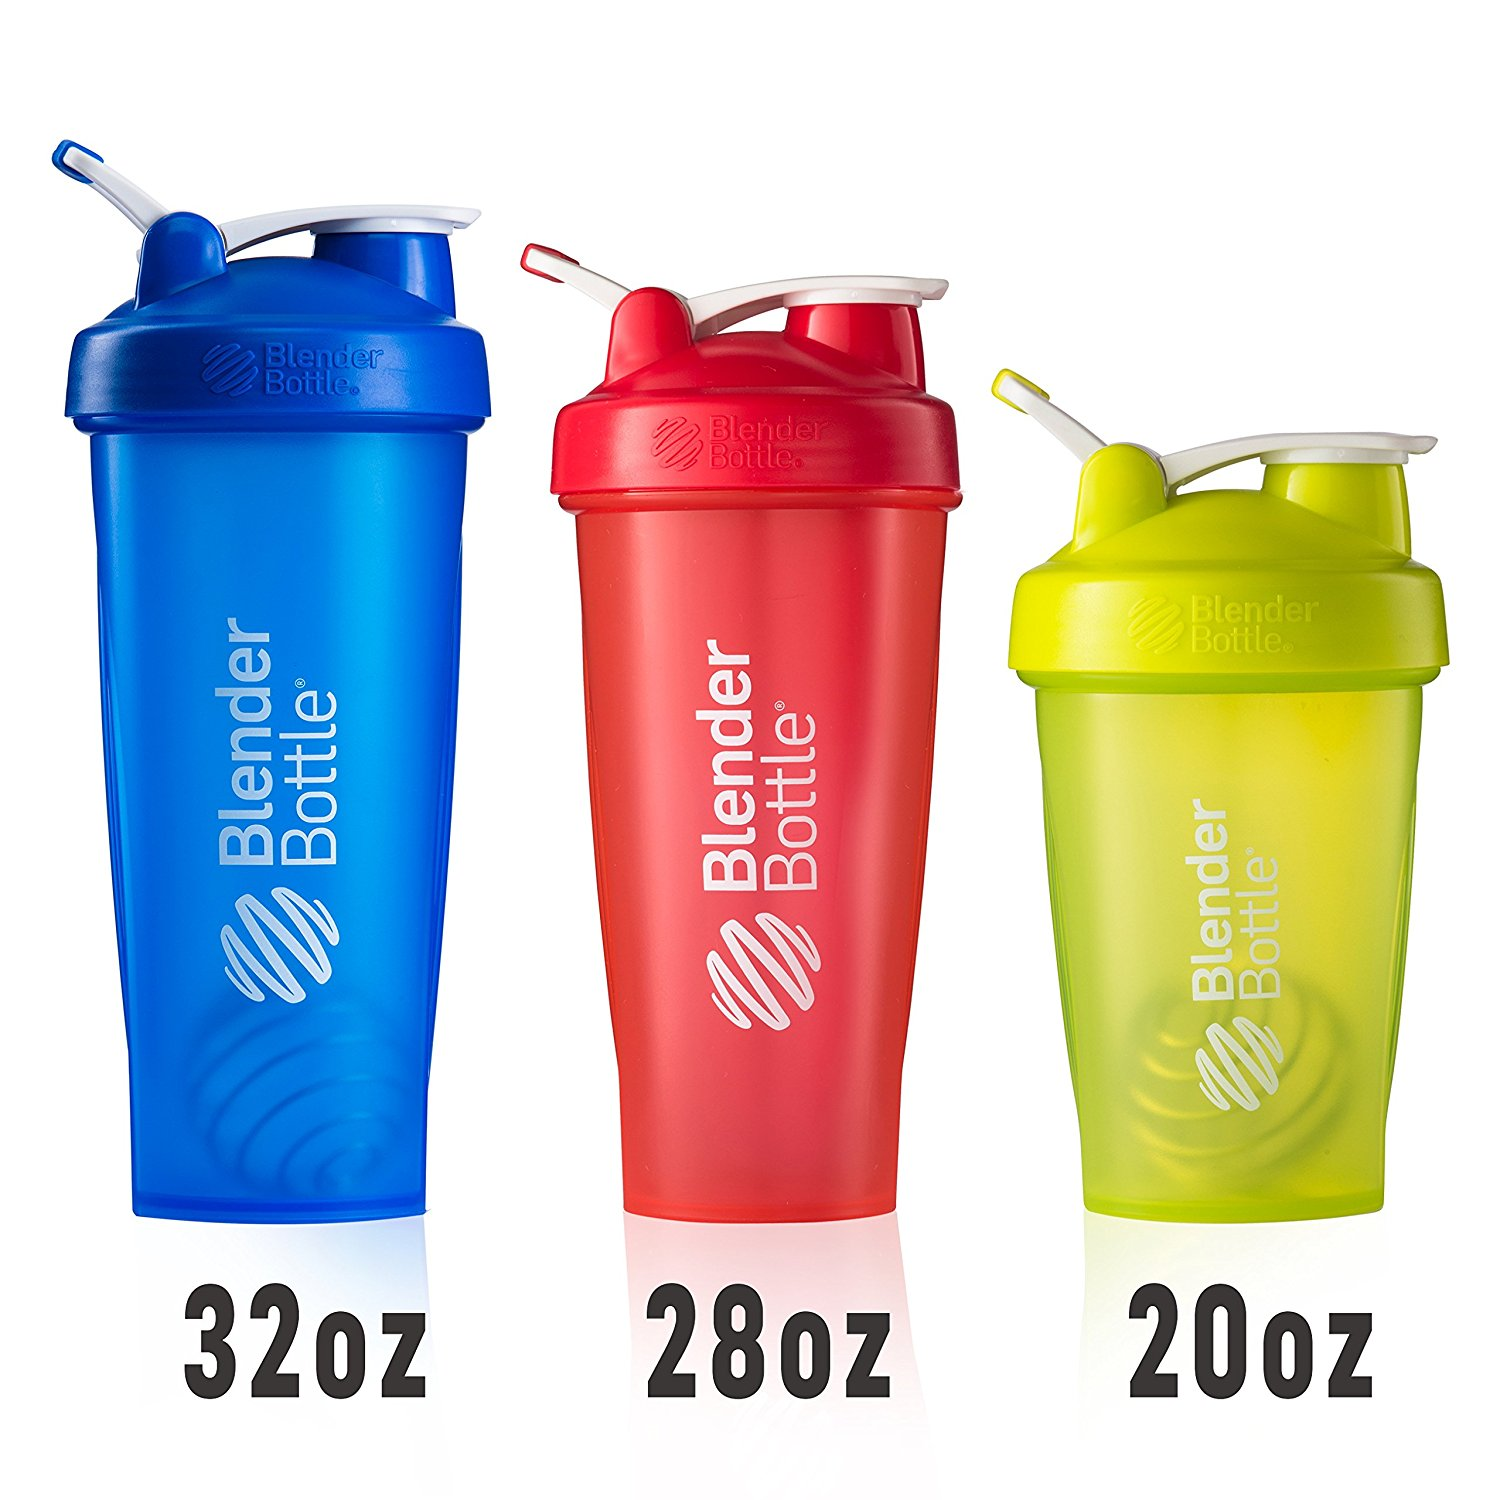 What's A Rest Day Peter Lammi Blender Bottle Recommendation - WhatsARestDay